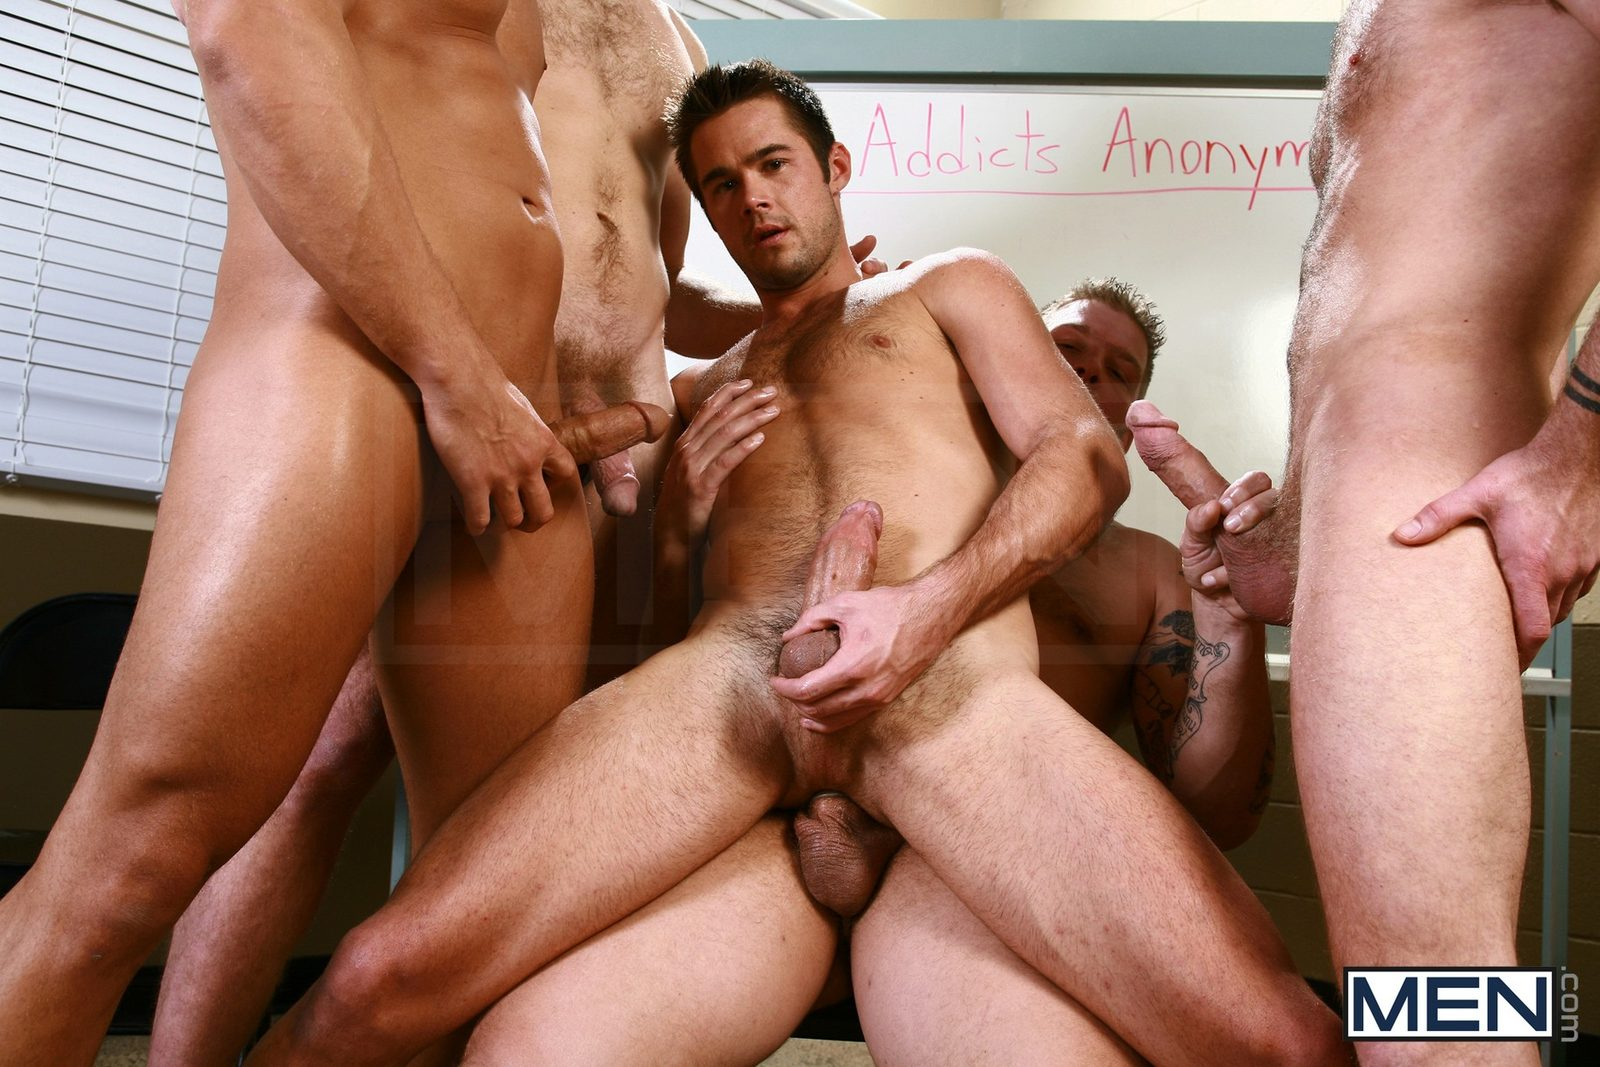 Trevor Knight, Colby Keller, Colby Jansen, Rocco Reed And